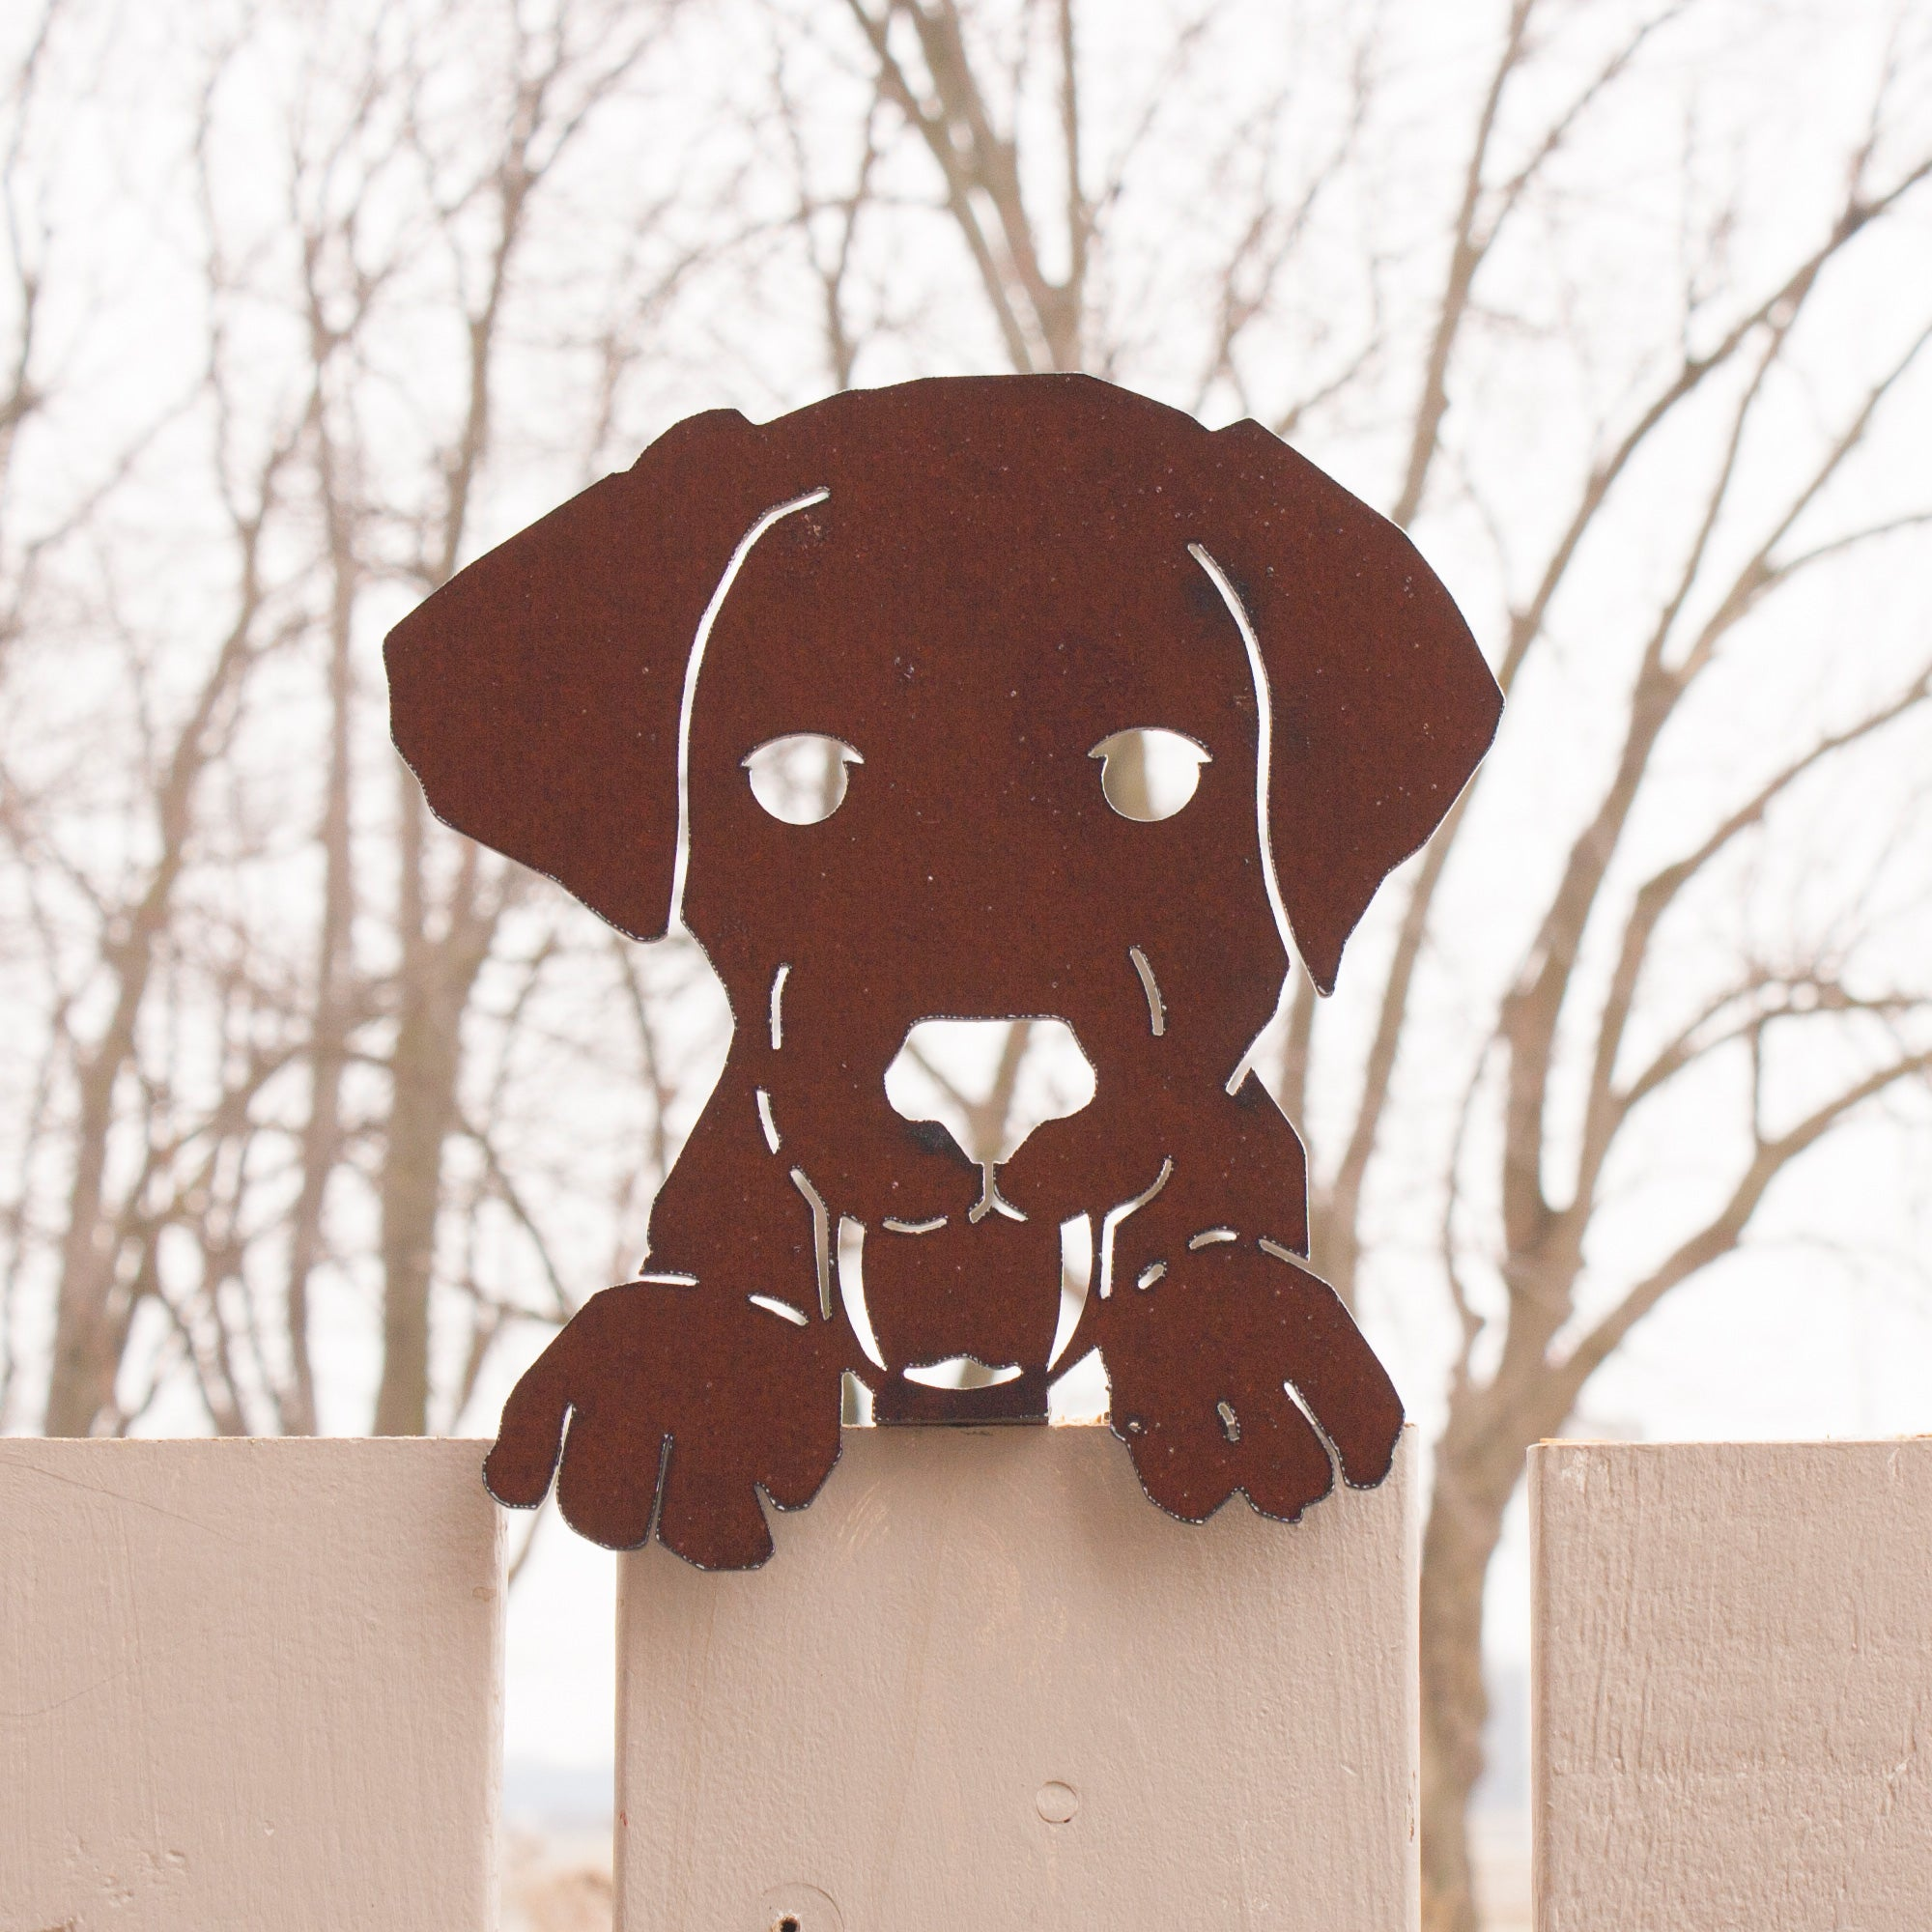 Dog with Paws – puppy for Garden, Fence or Wall Decor